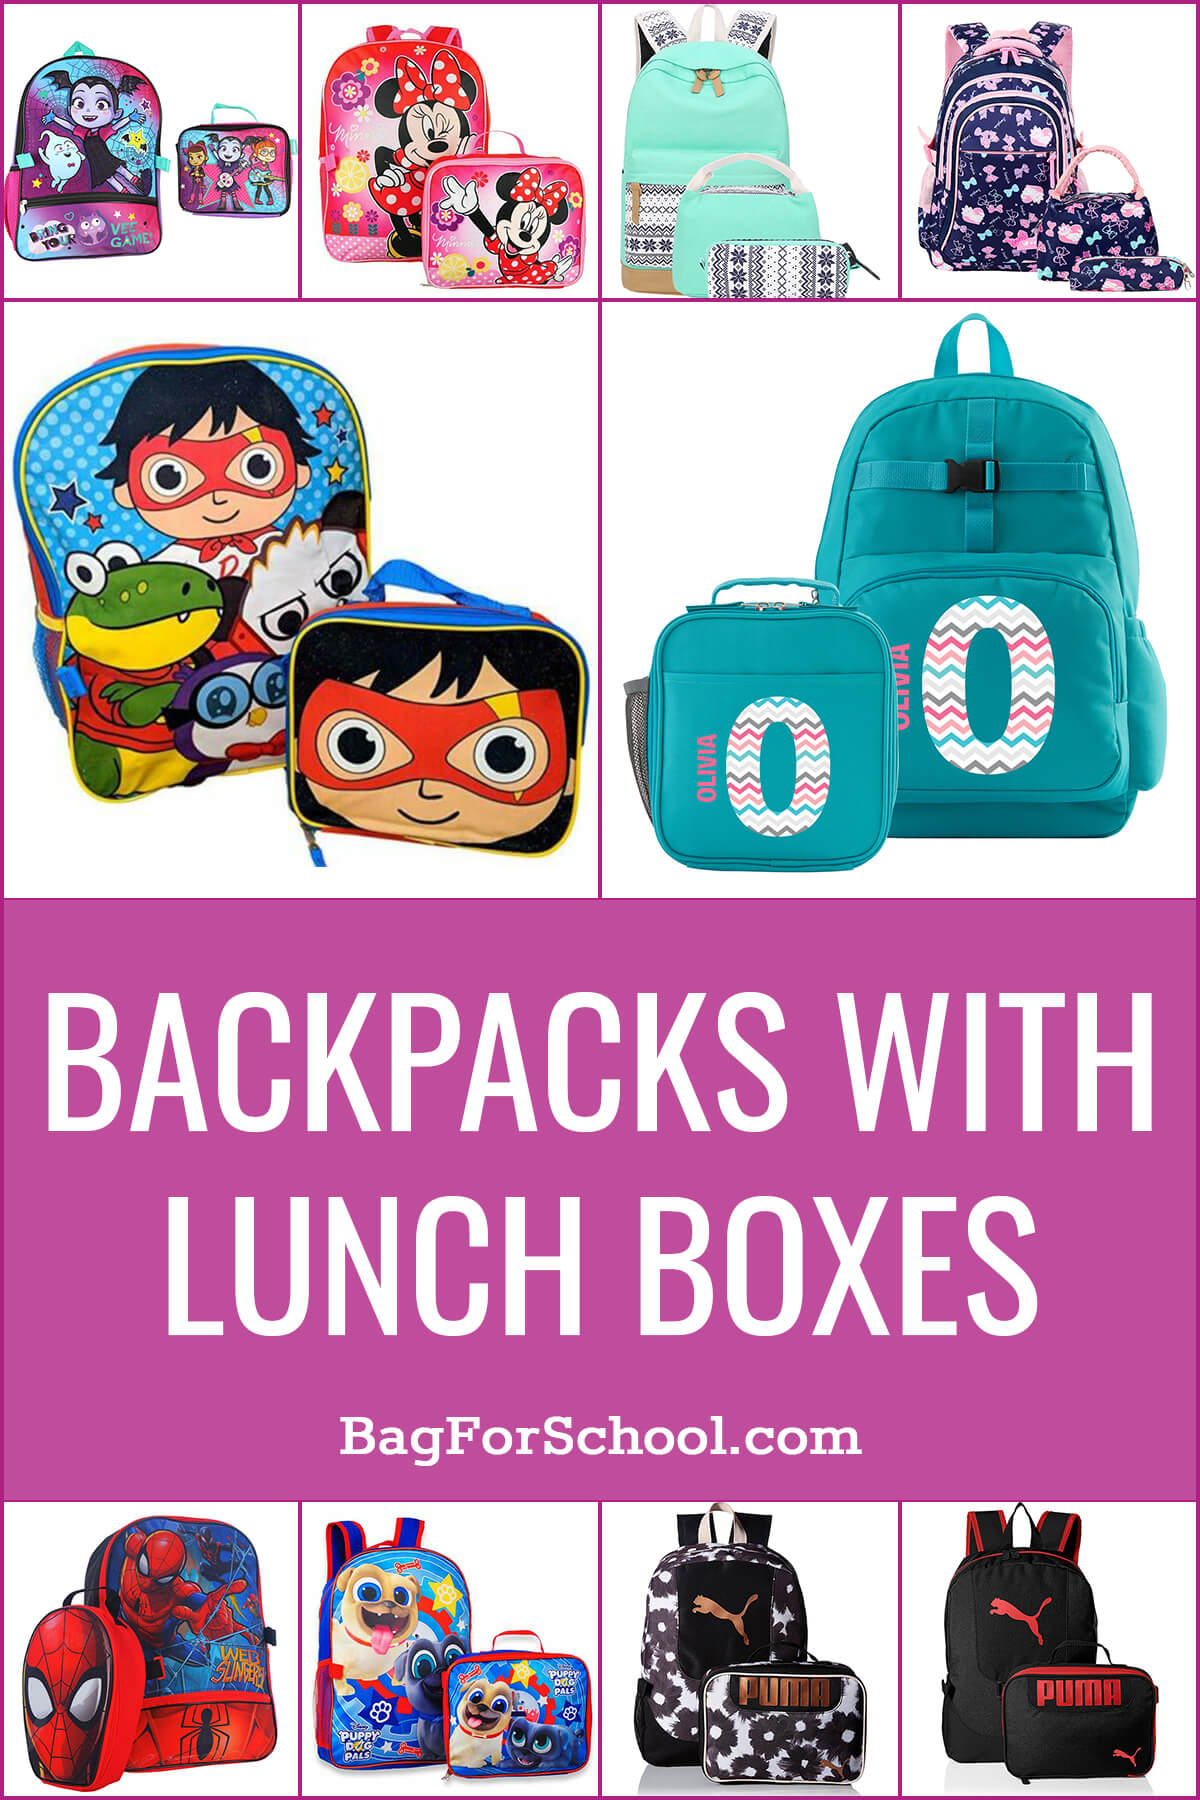 Backpacks-with-Lunch-Boxes